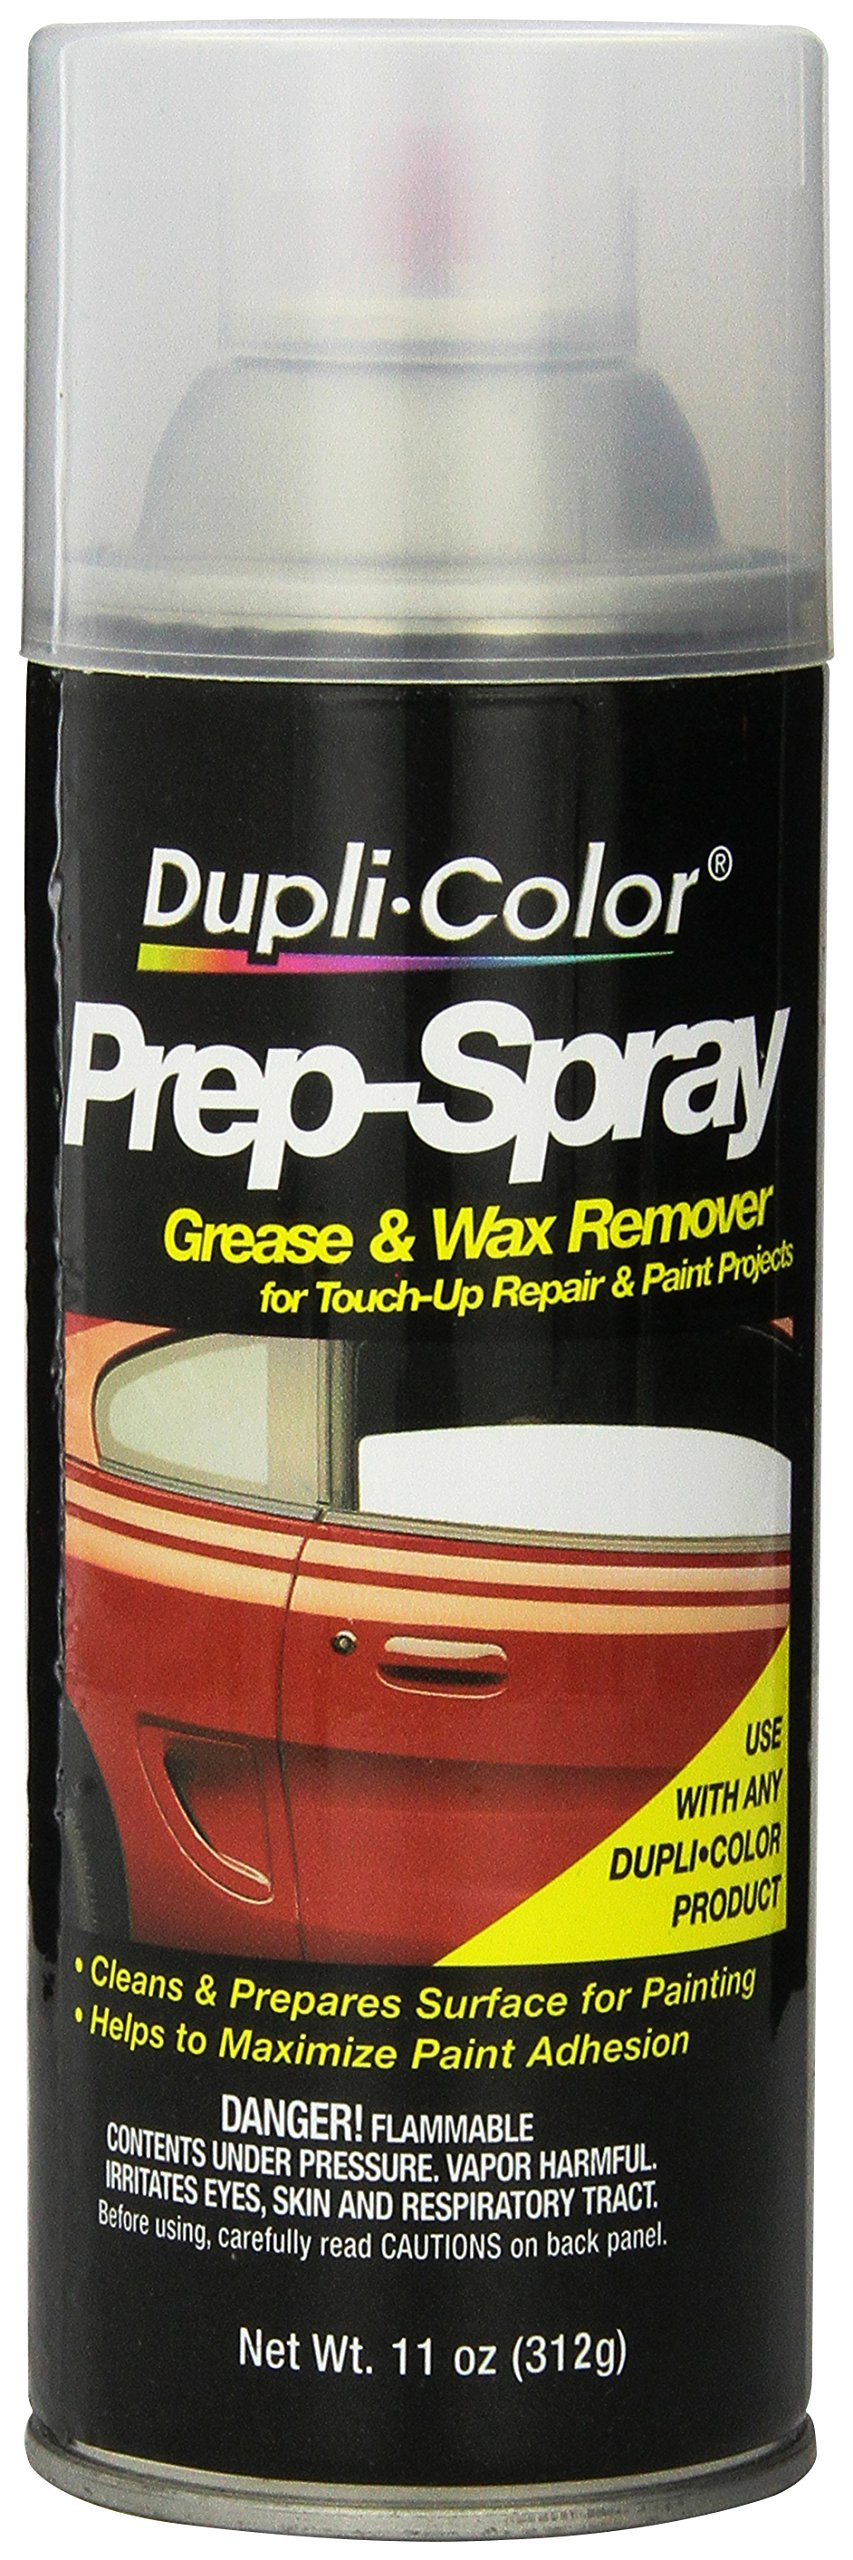 Dupli-Color (PS100-6 PK Grease and Wax Remover - 11 oz. Aerosol, (Case of 6)